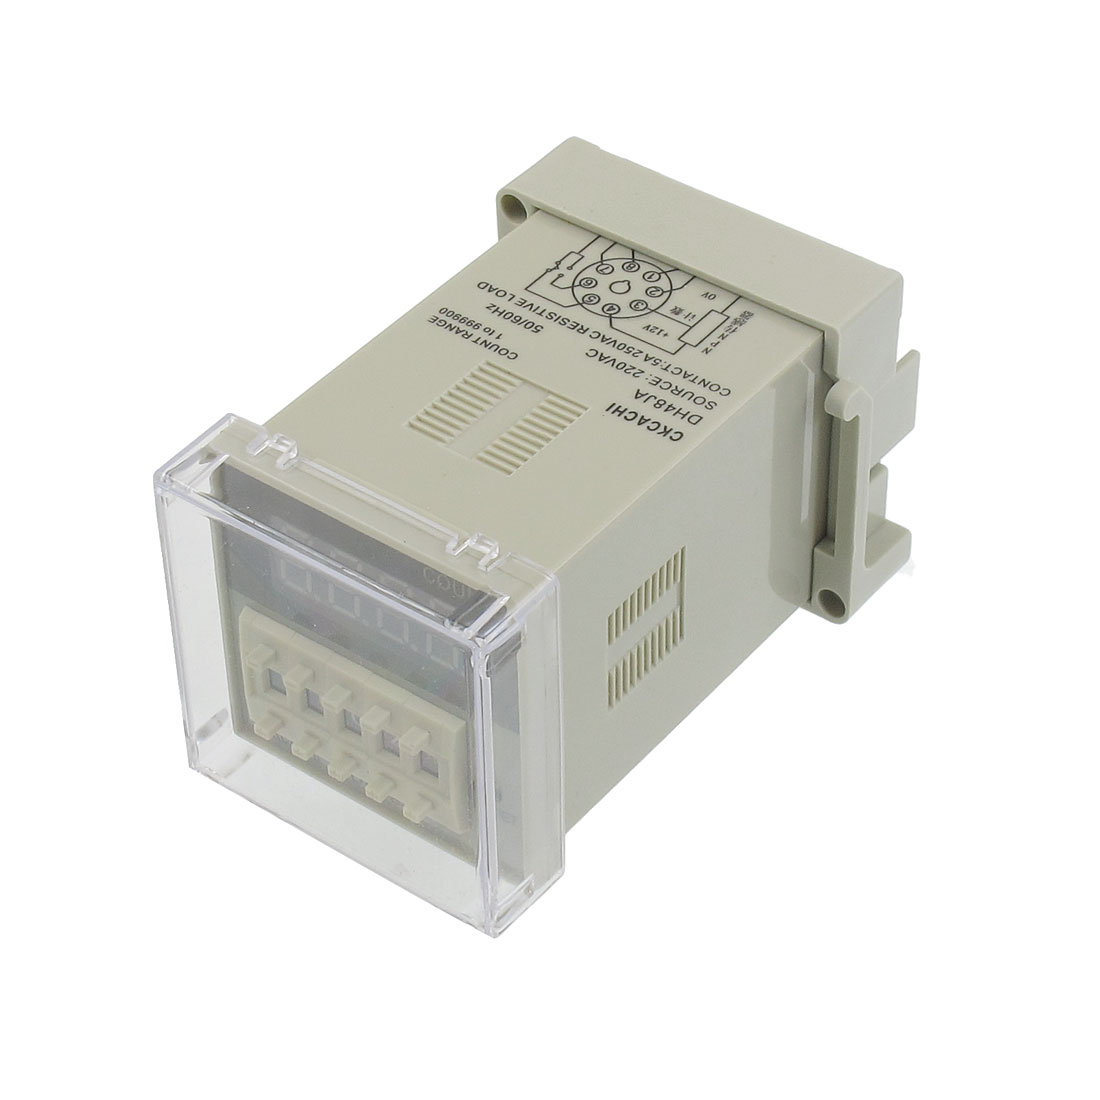 DH48JA 220VAC 1-999900 Count Range 8 Pins Digital Counter Relay